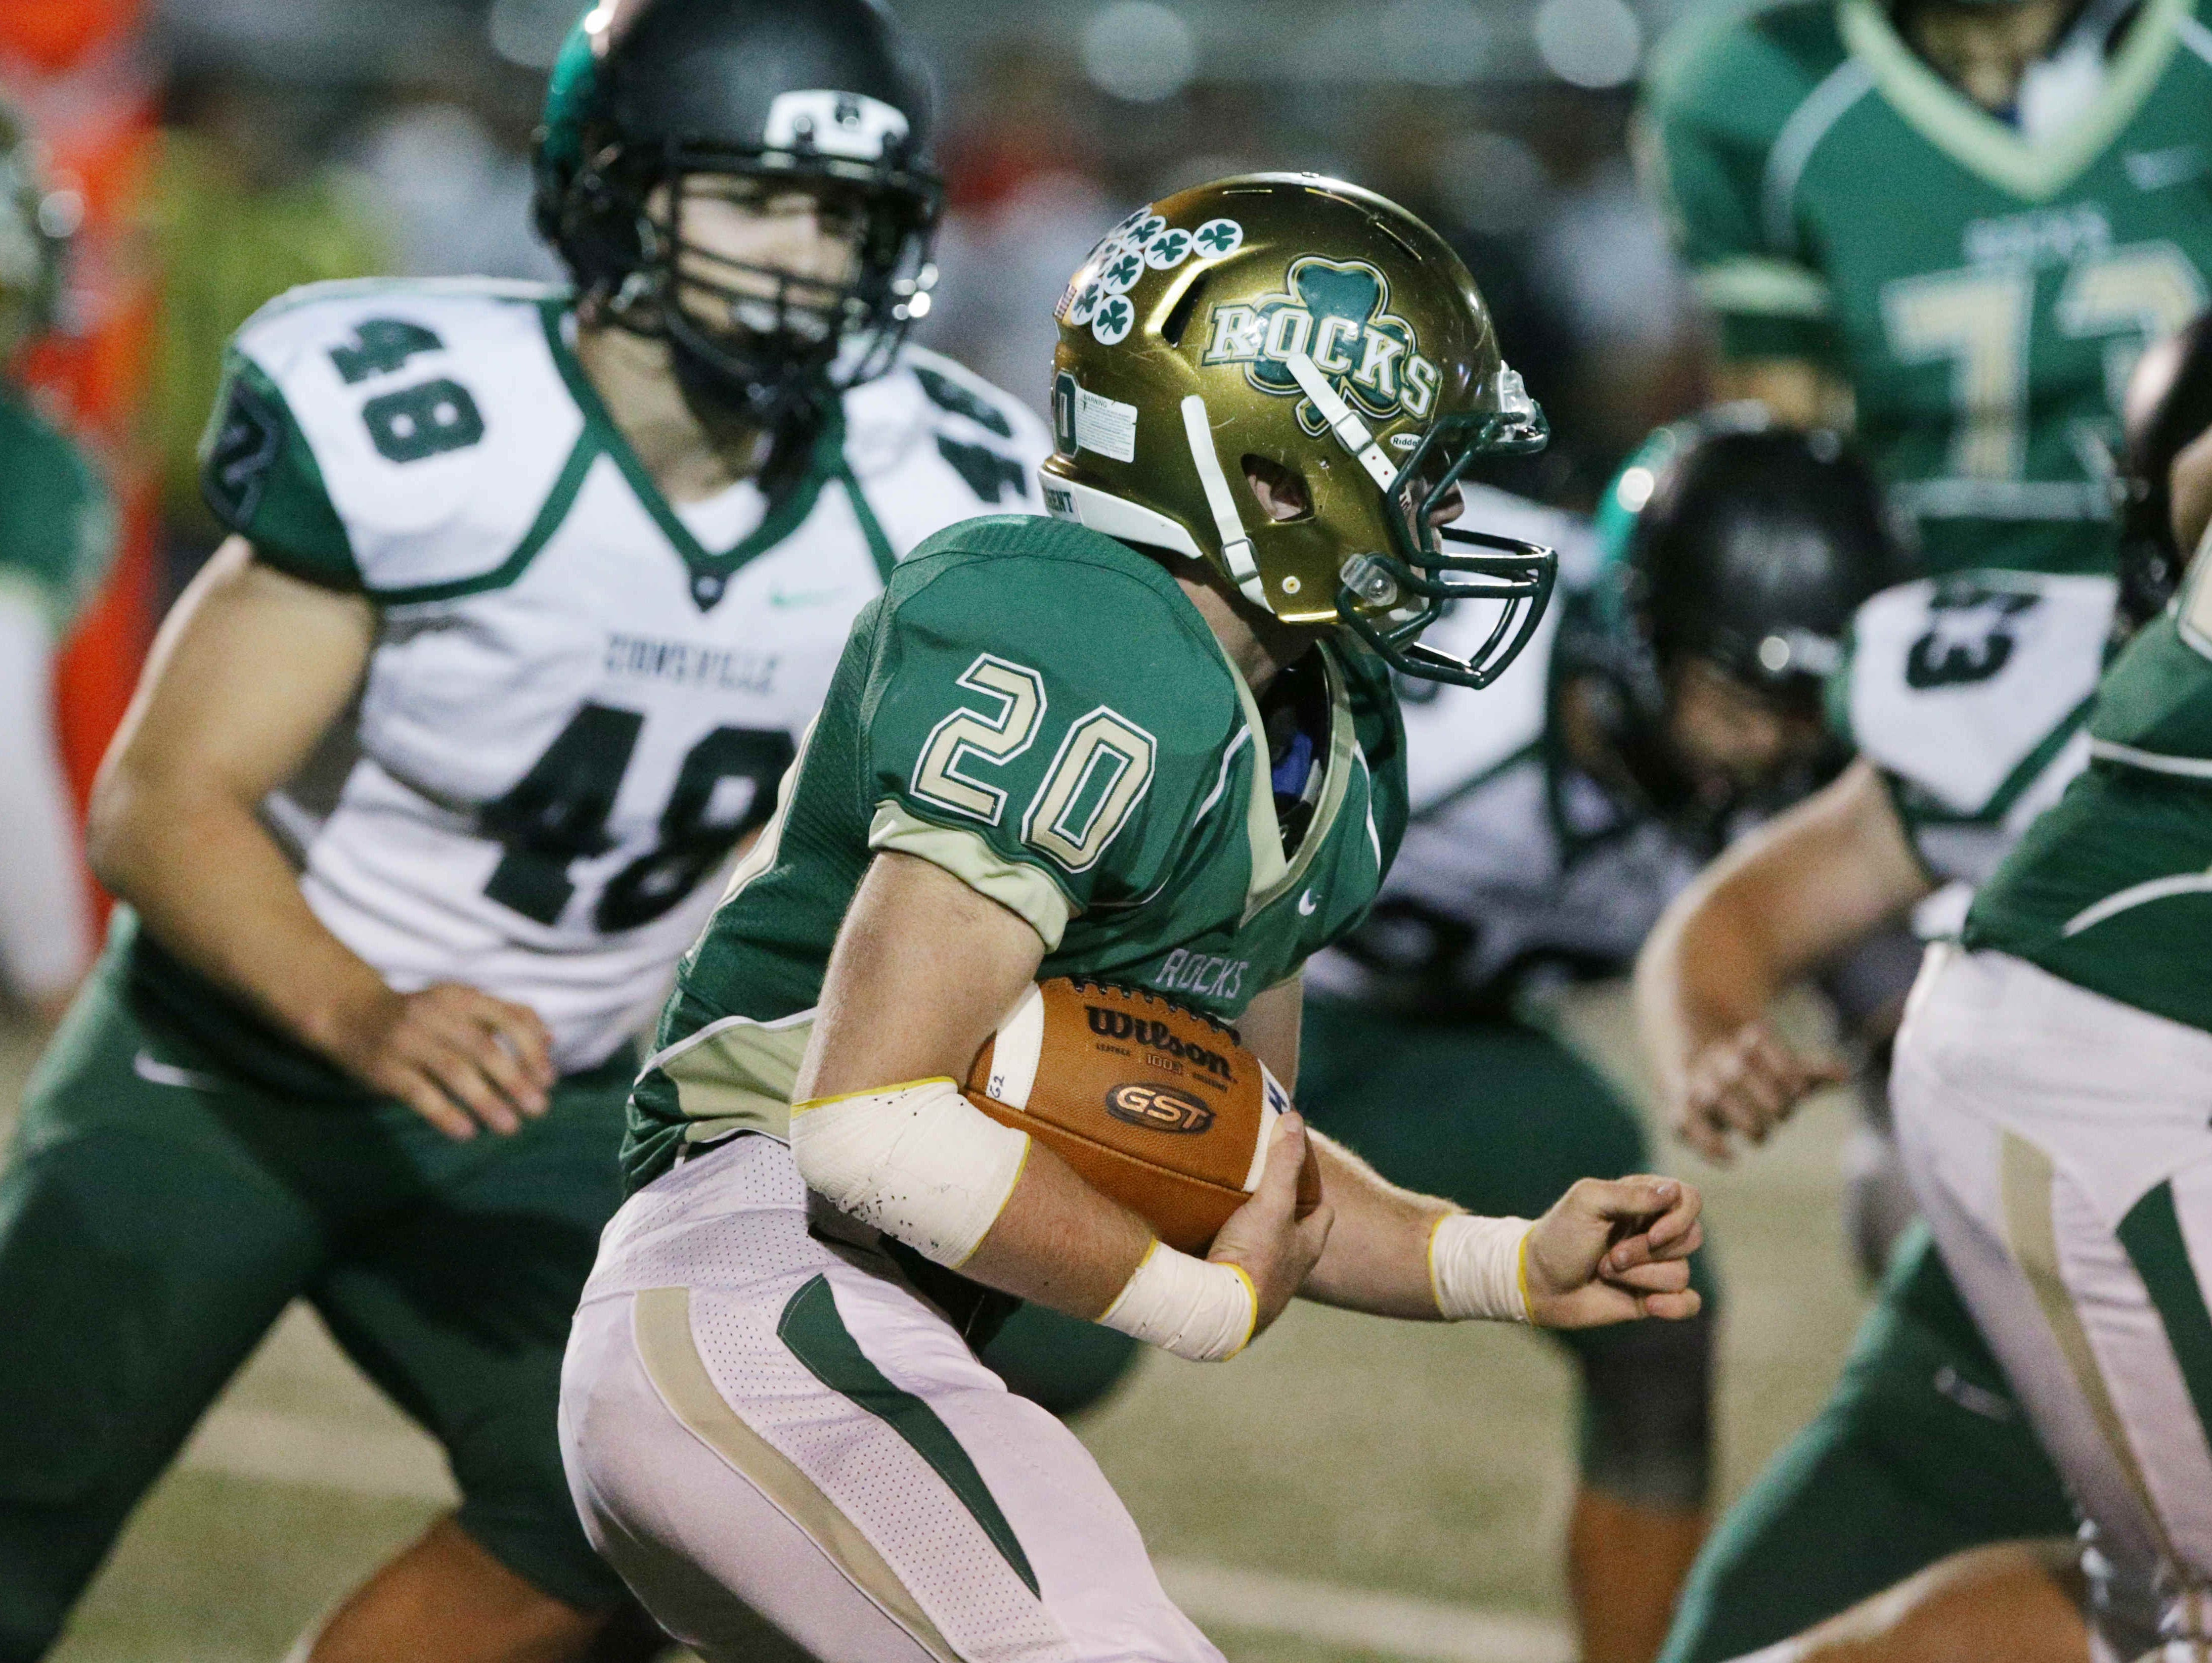 Westfield's No. 20, Owen McGraw looks for a hole in Zionsville's defense, Friday September 2nd, 2016. Westfield faced off against Zionsville at Westfield's Riverview Health Stadium.